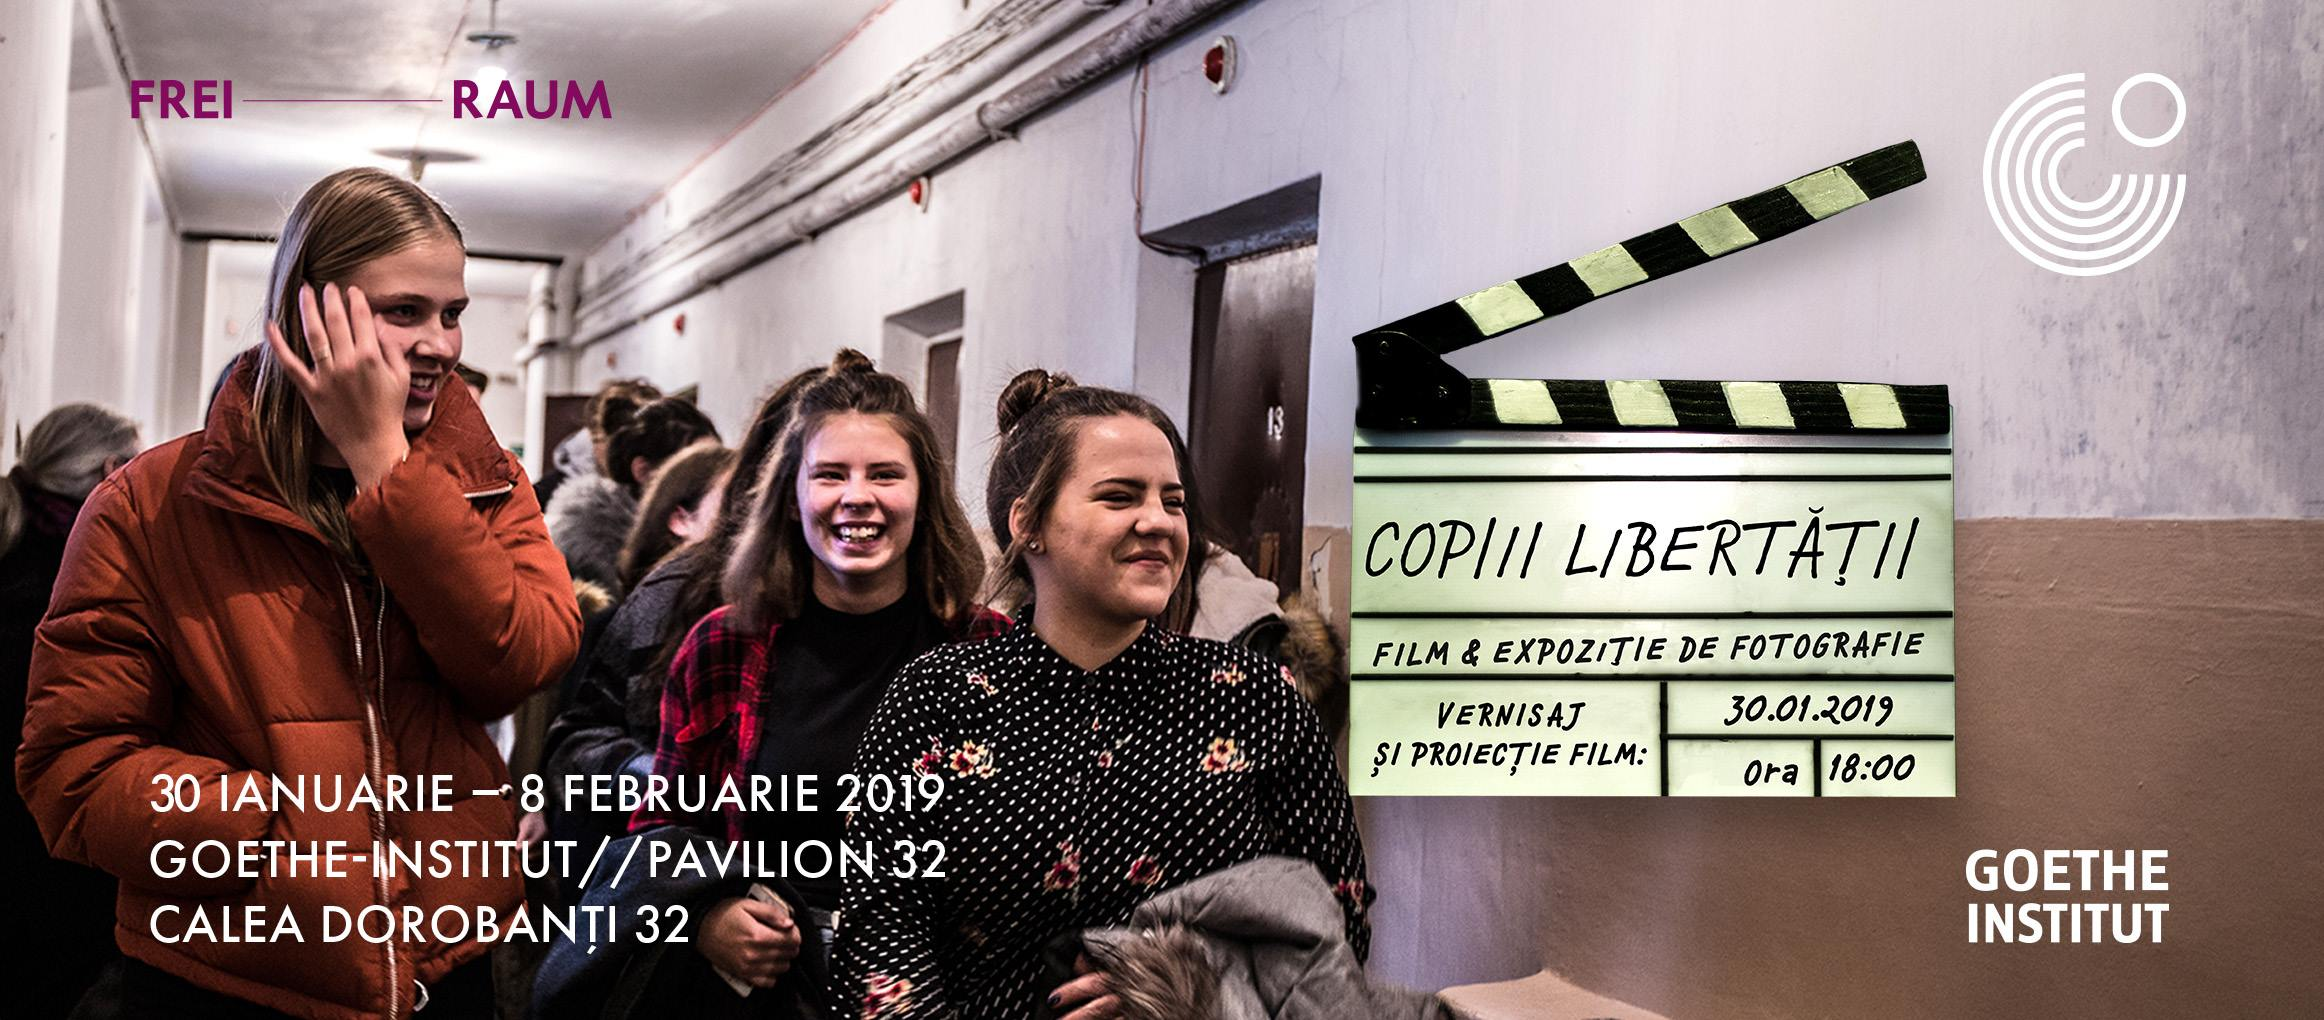 Copiii libertății- vernisaj și proiecție de film documentar